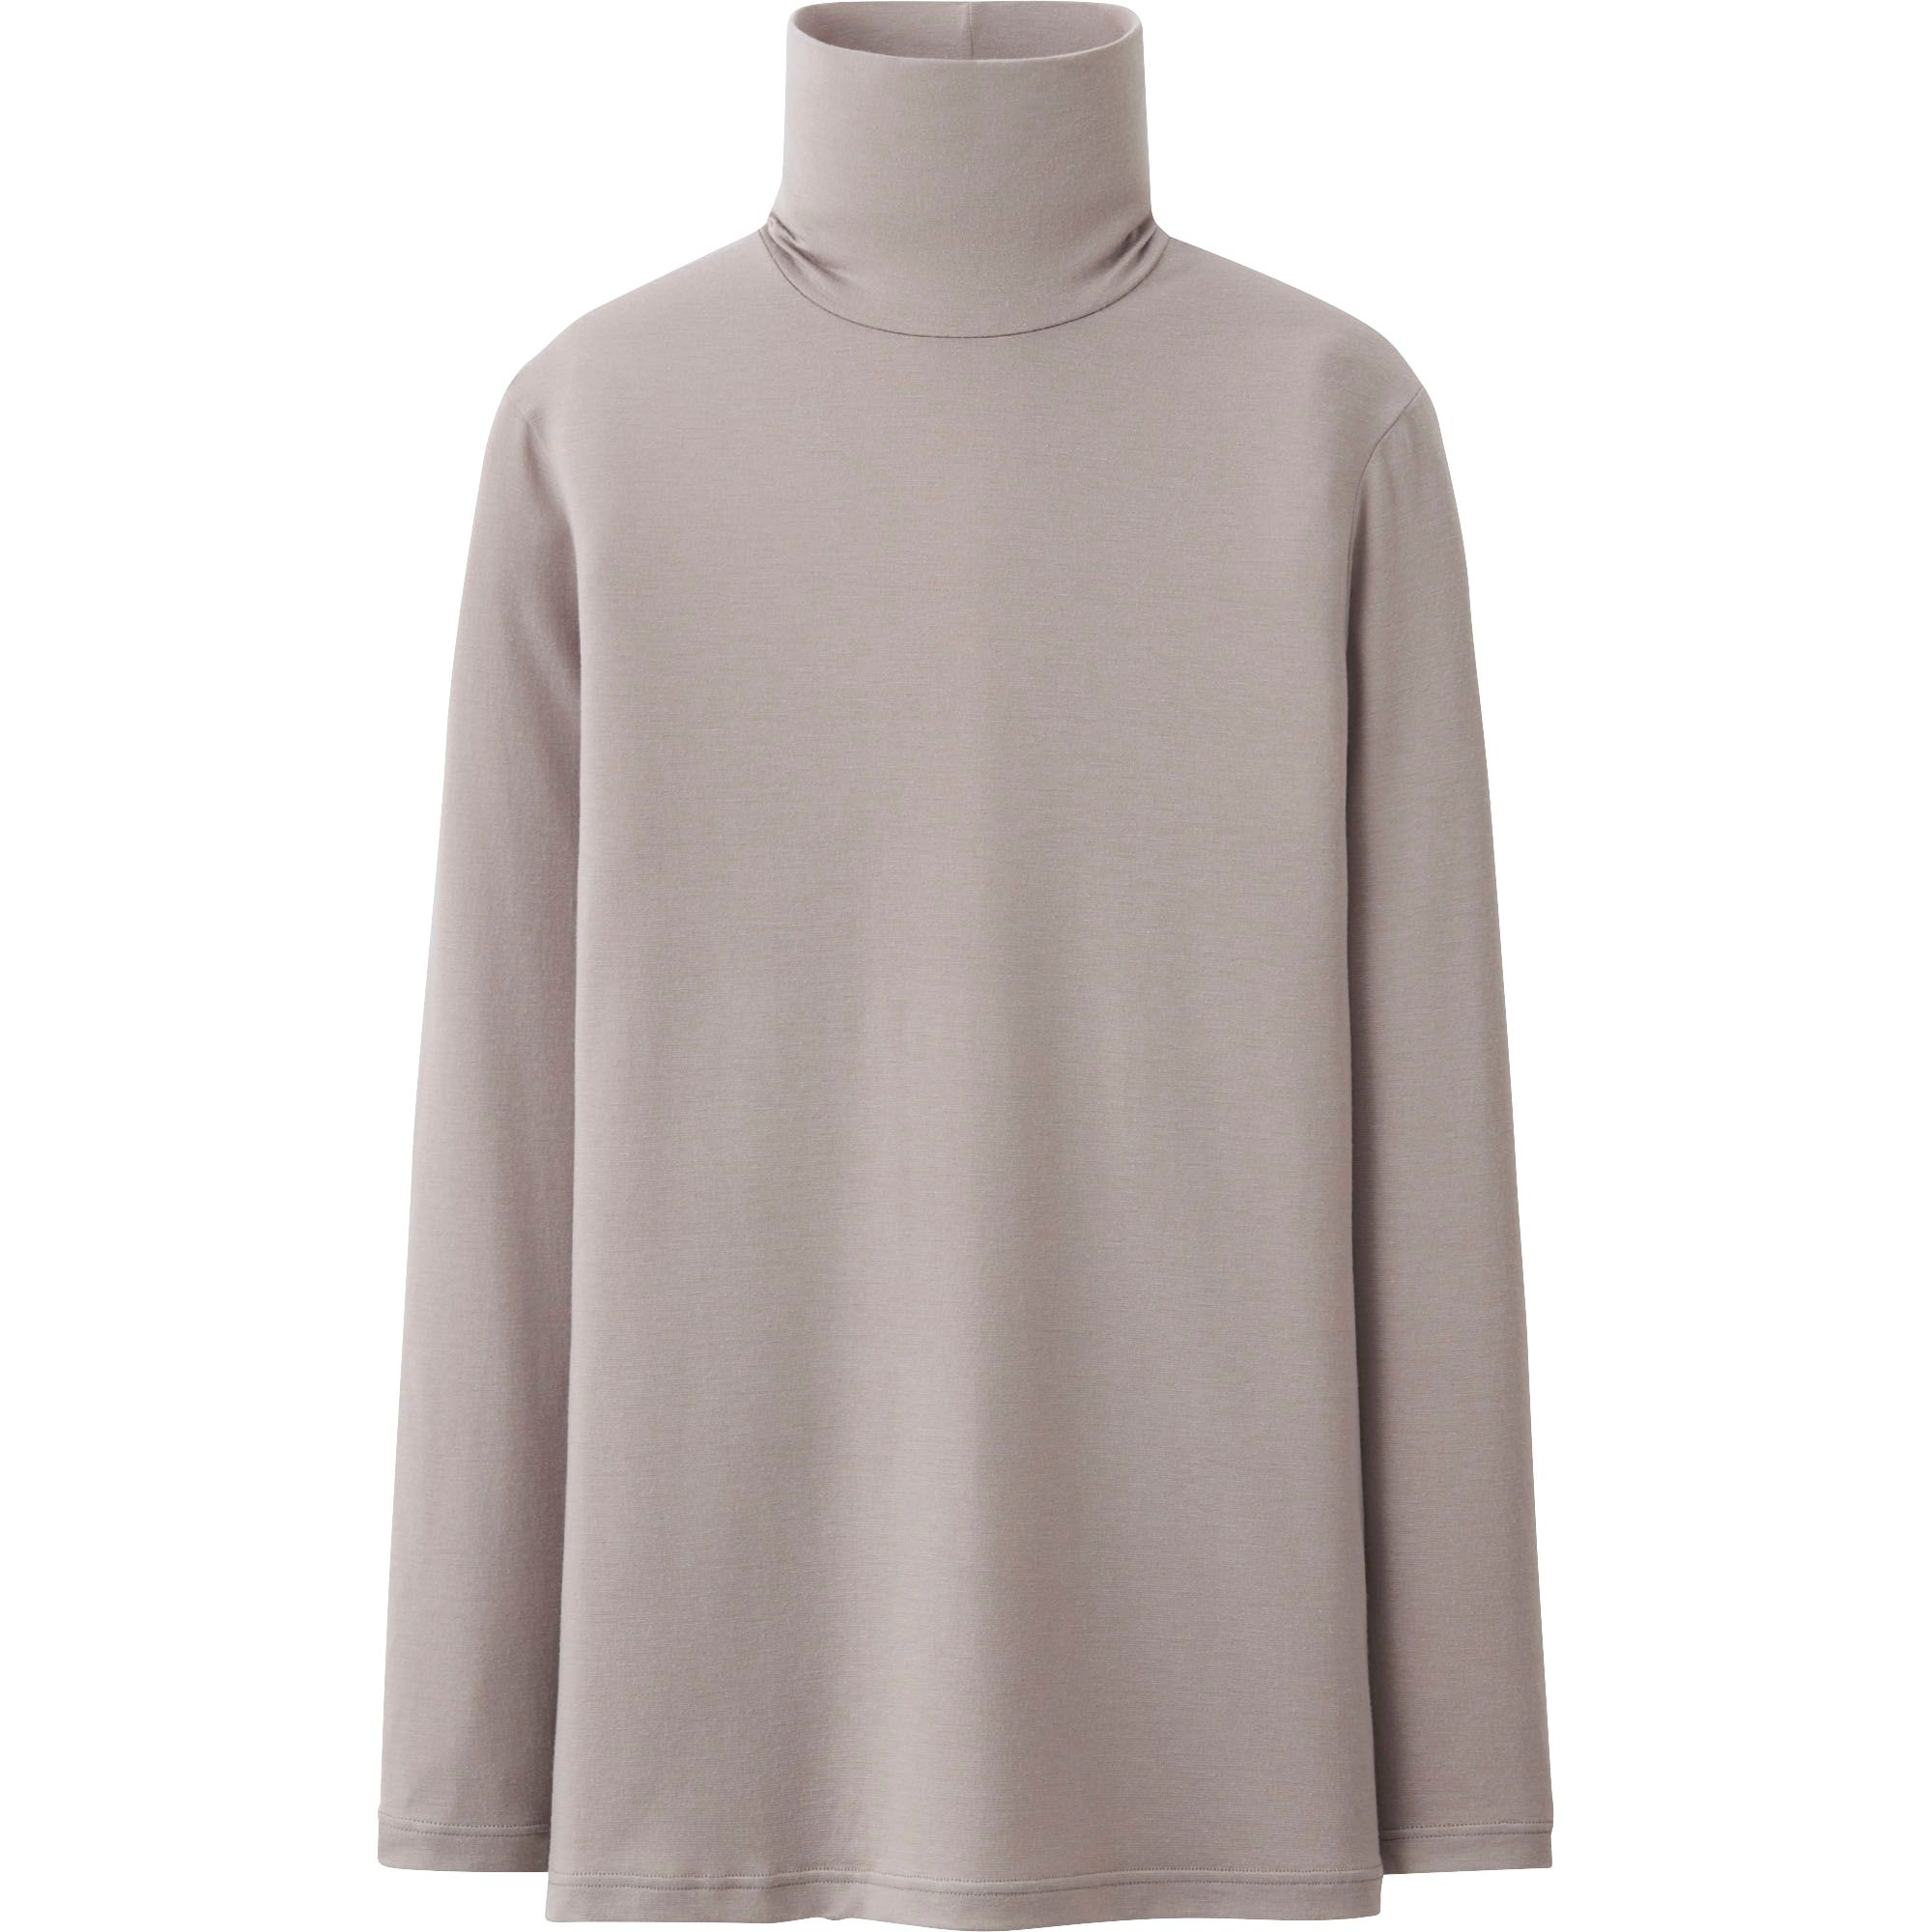 Uniqlo Heattech Polo Neck Long Sleeve T Shirt In Gray For